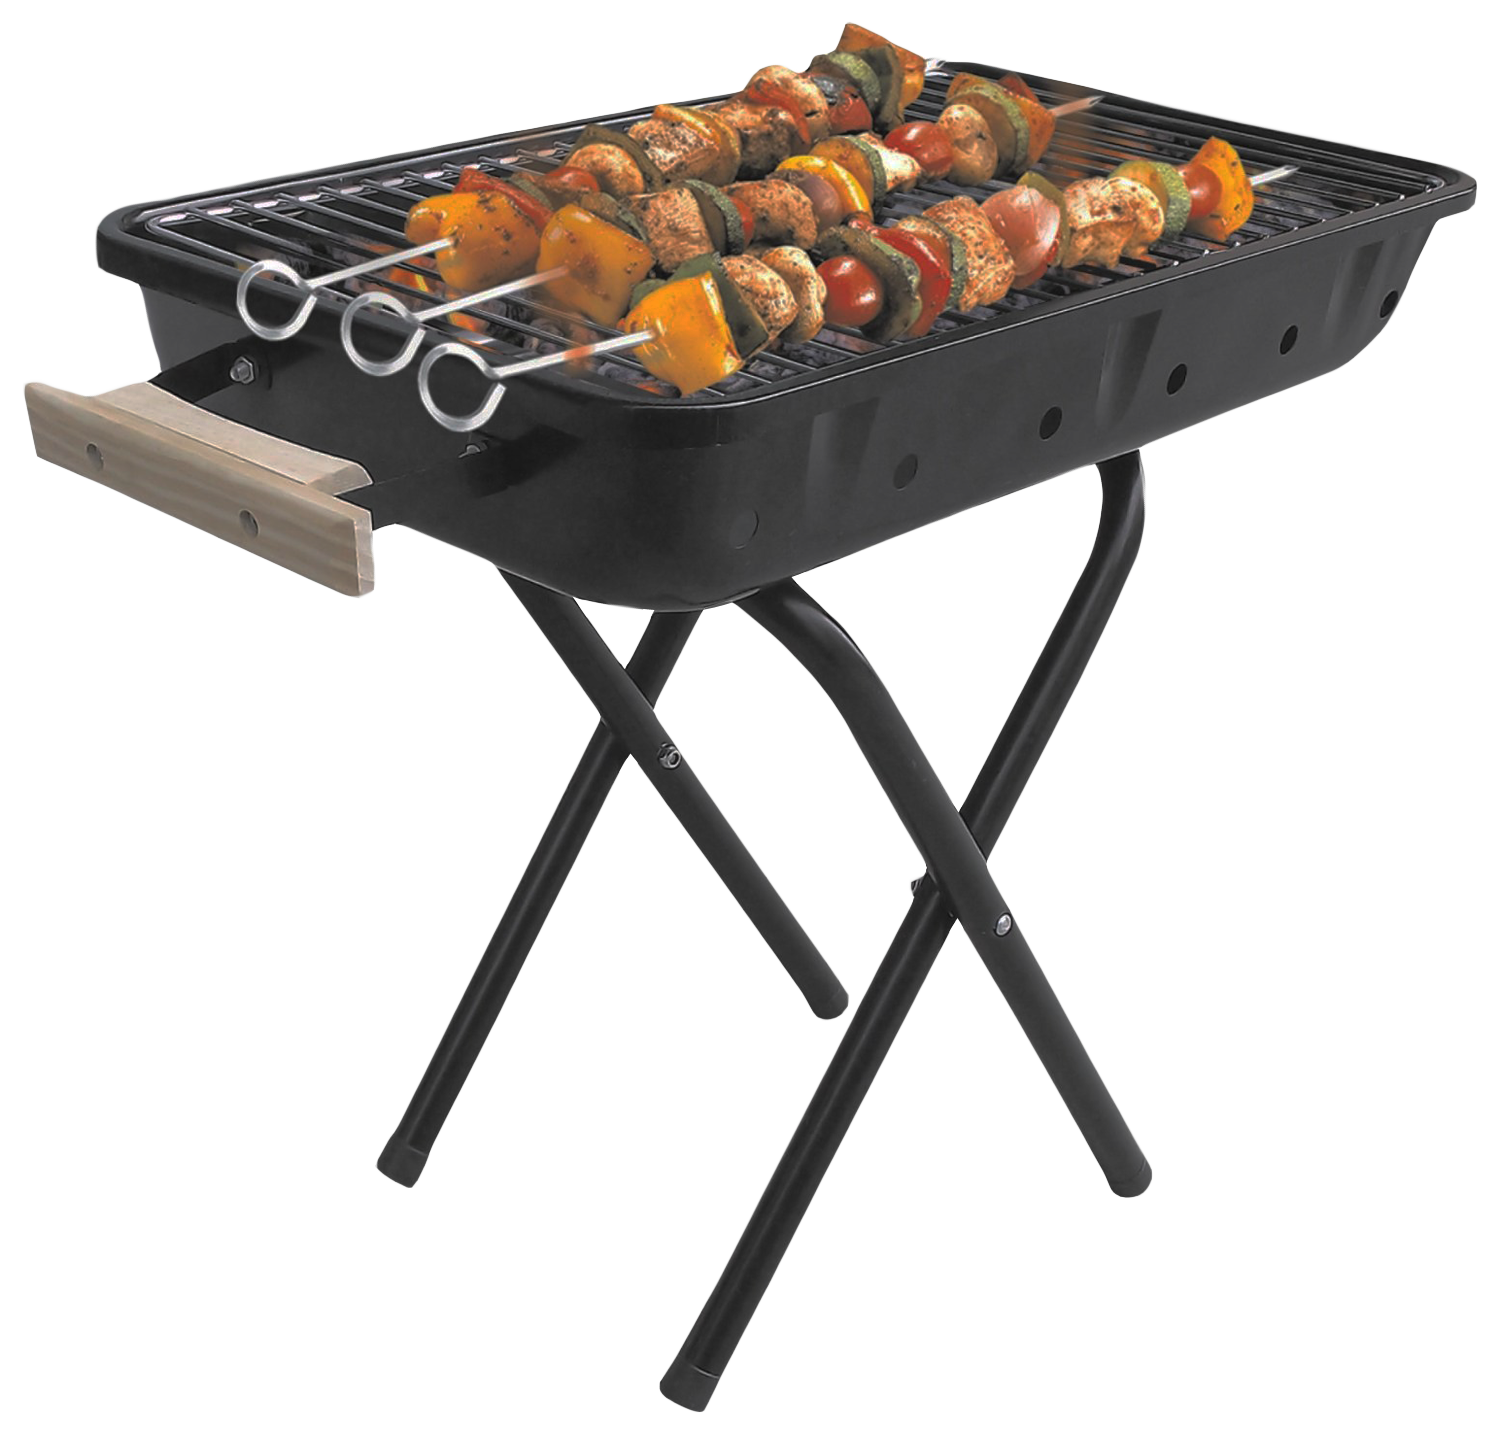 Bbq grill png. Electric tandoor barbeque image